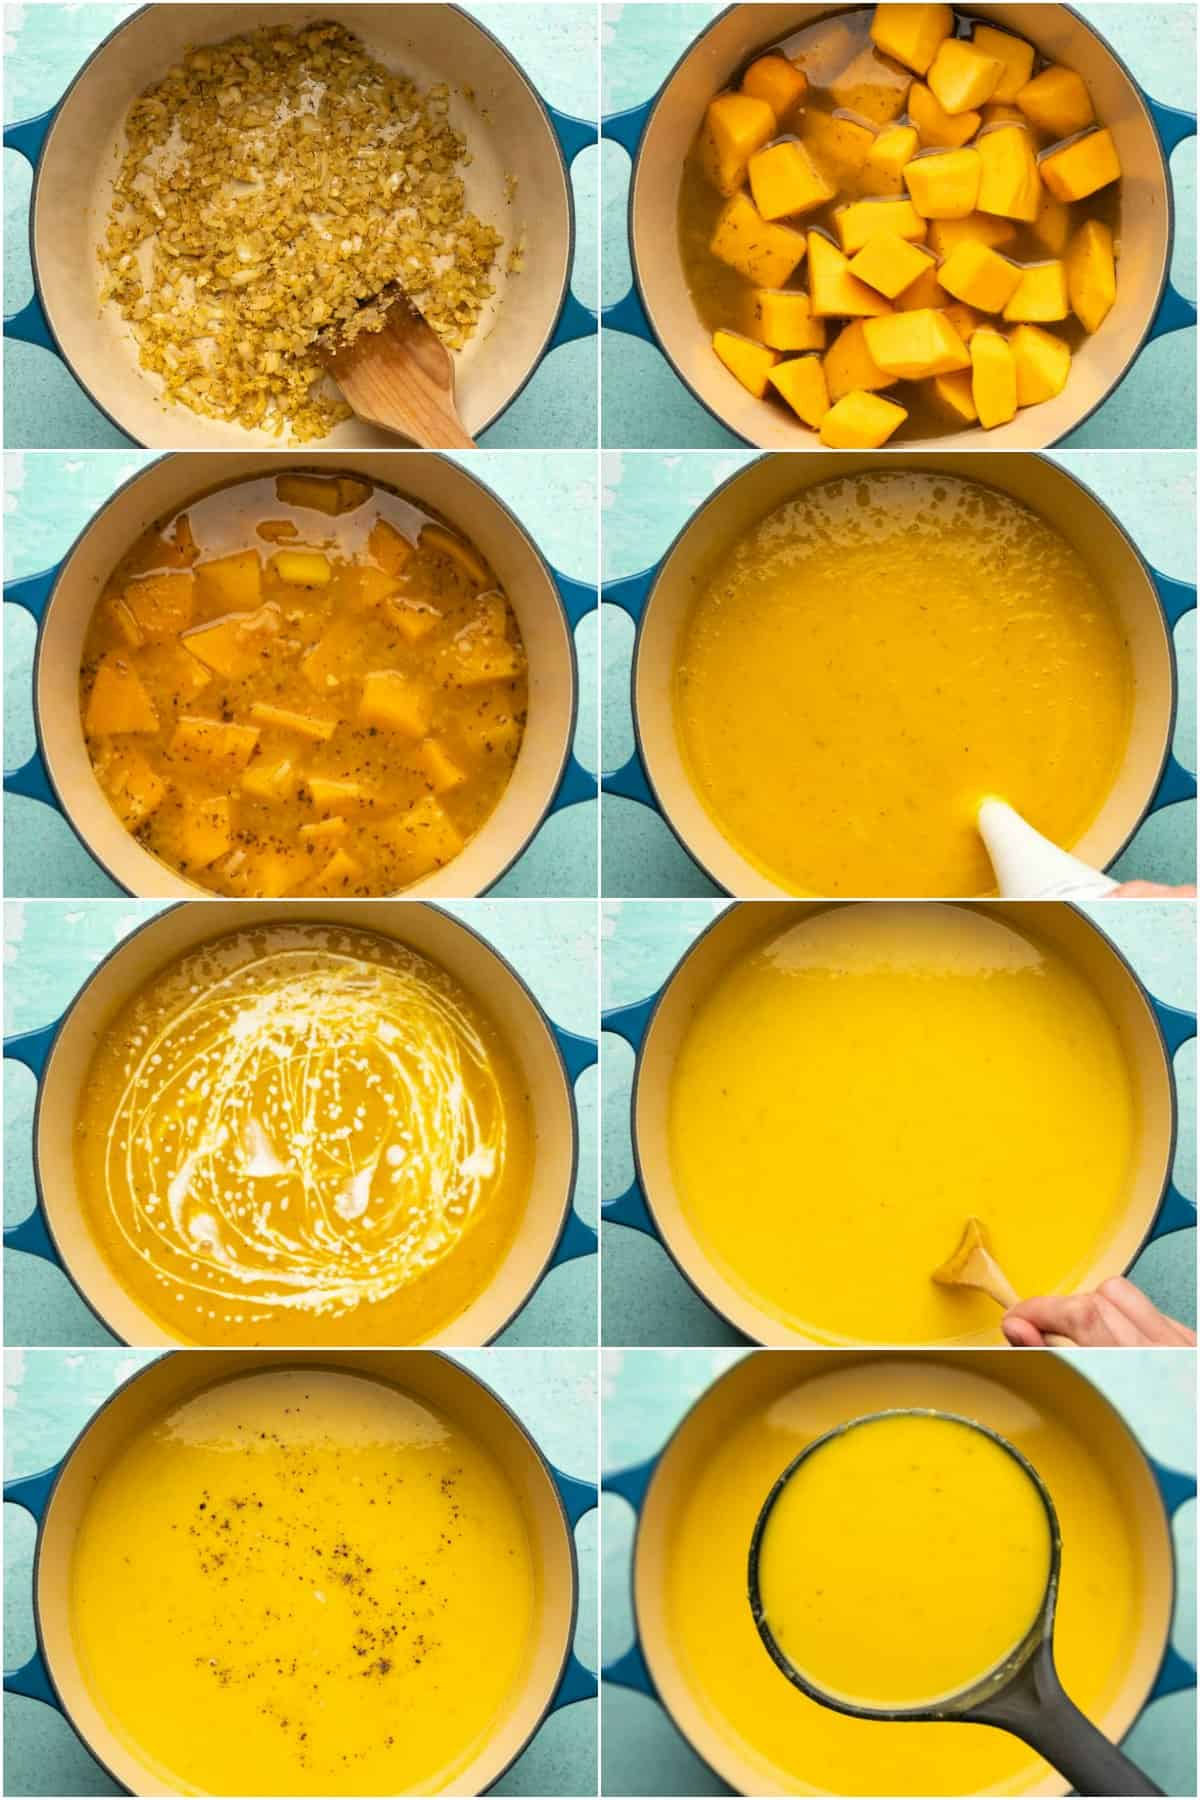 Step by step process photo collage of making pumpkin soup.